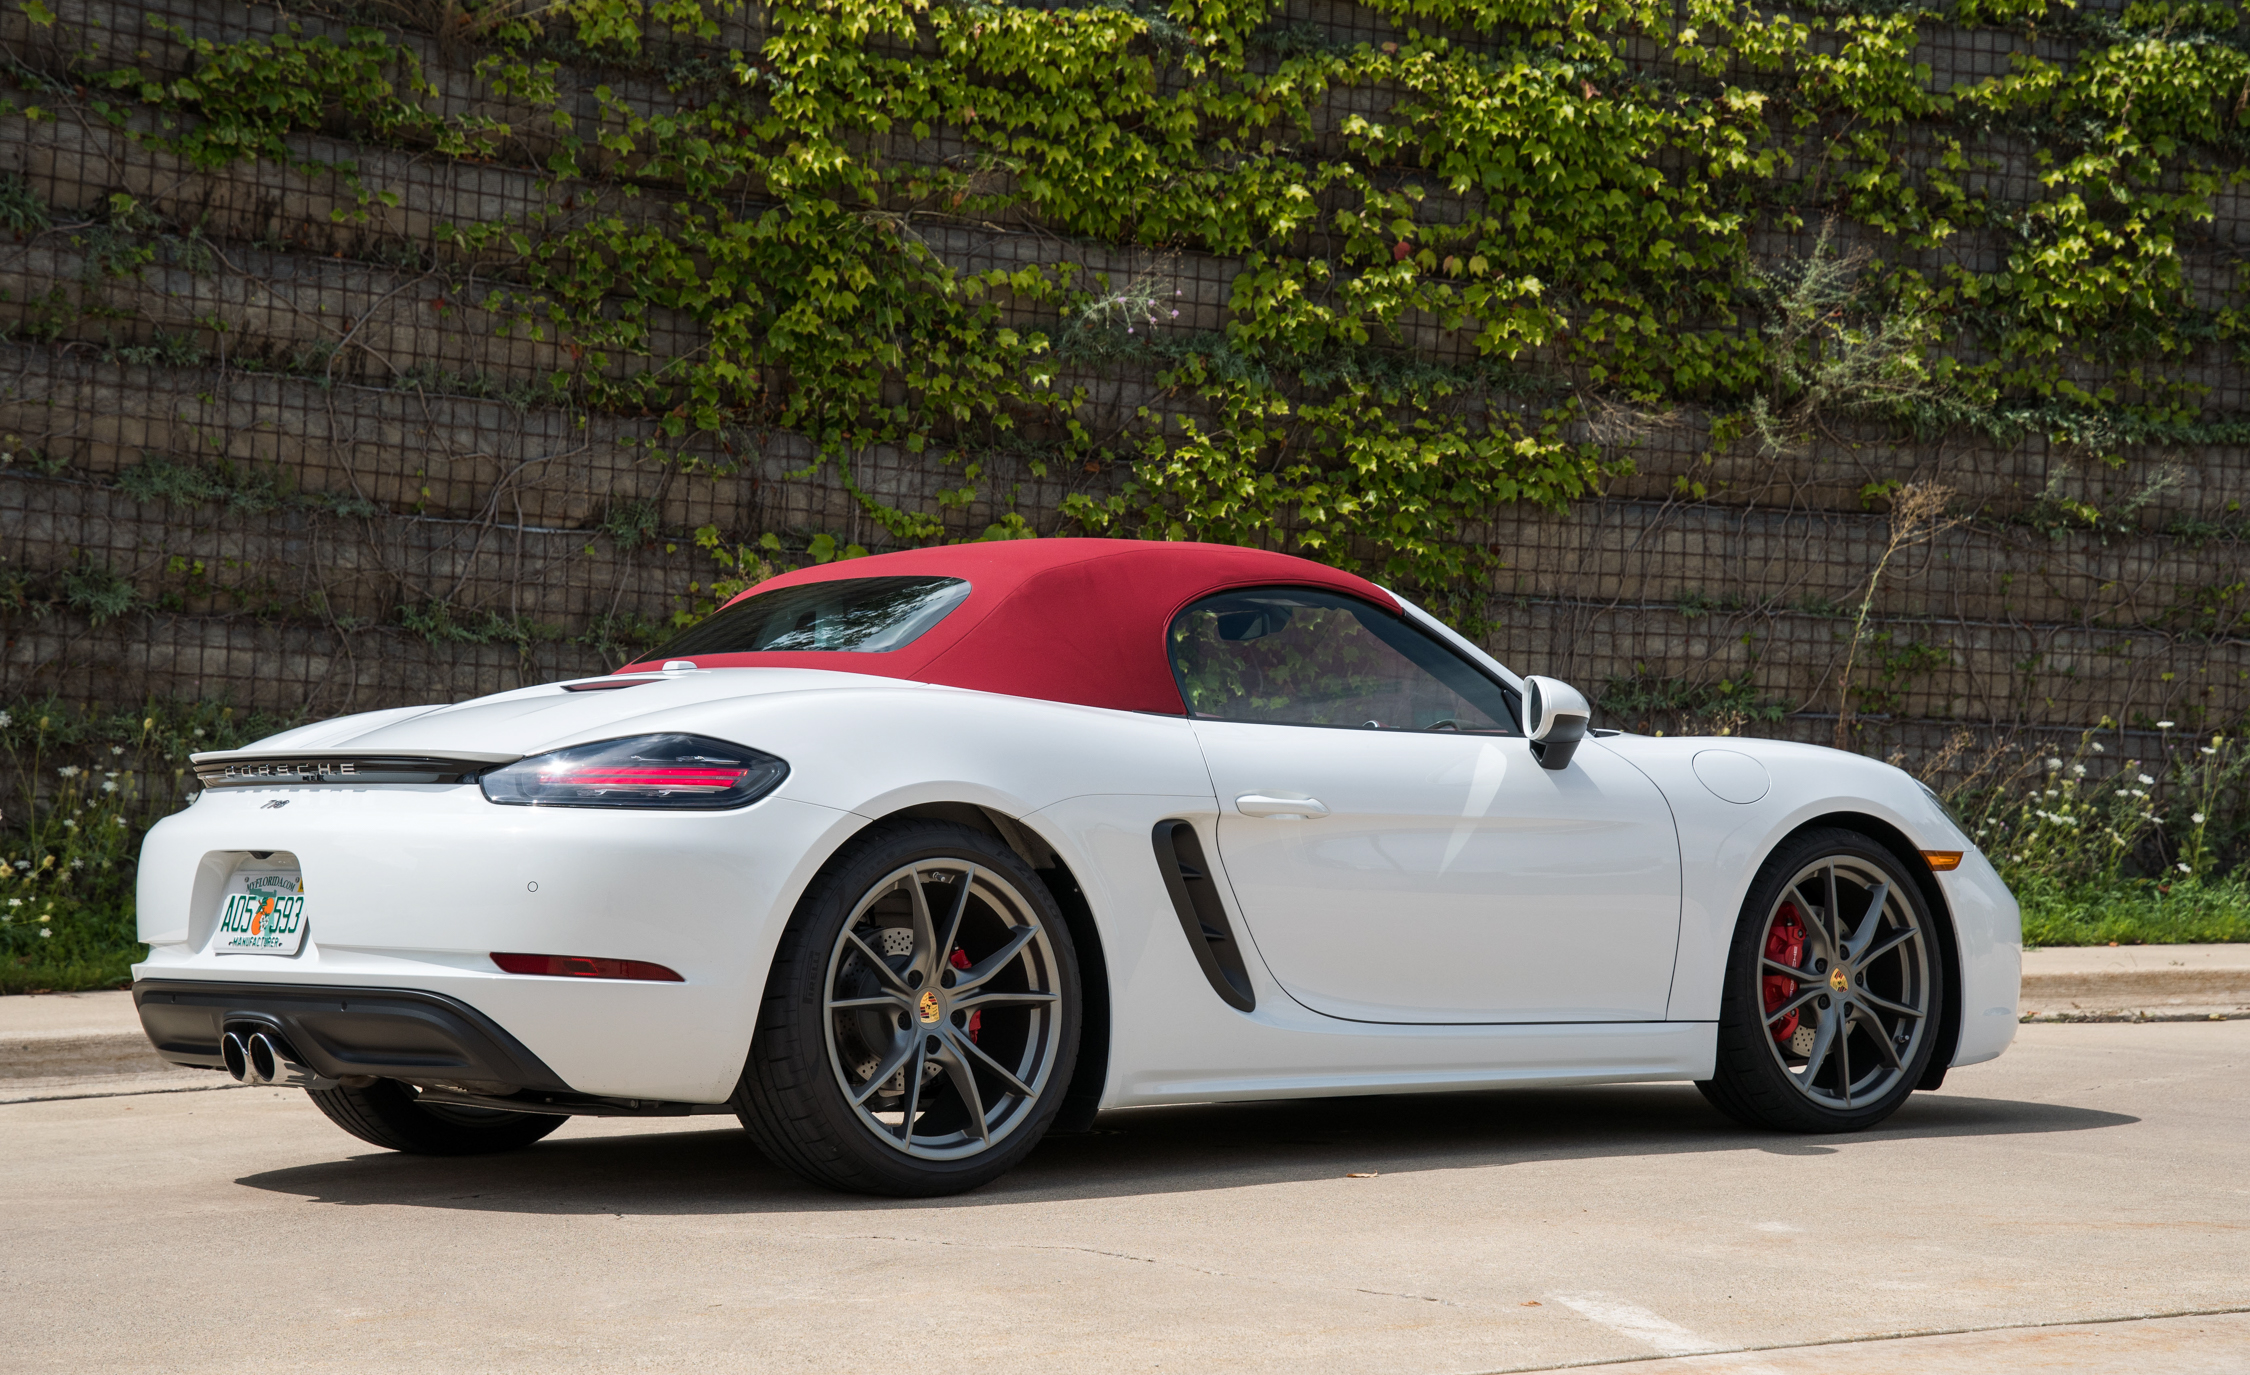 2017 Porsche 718 Boxster (View 59 of 71)